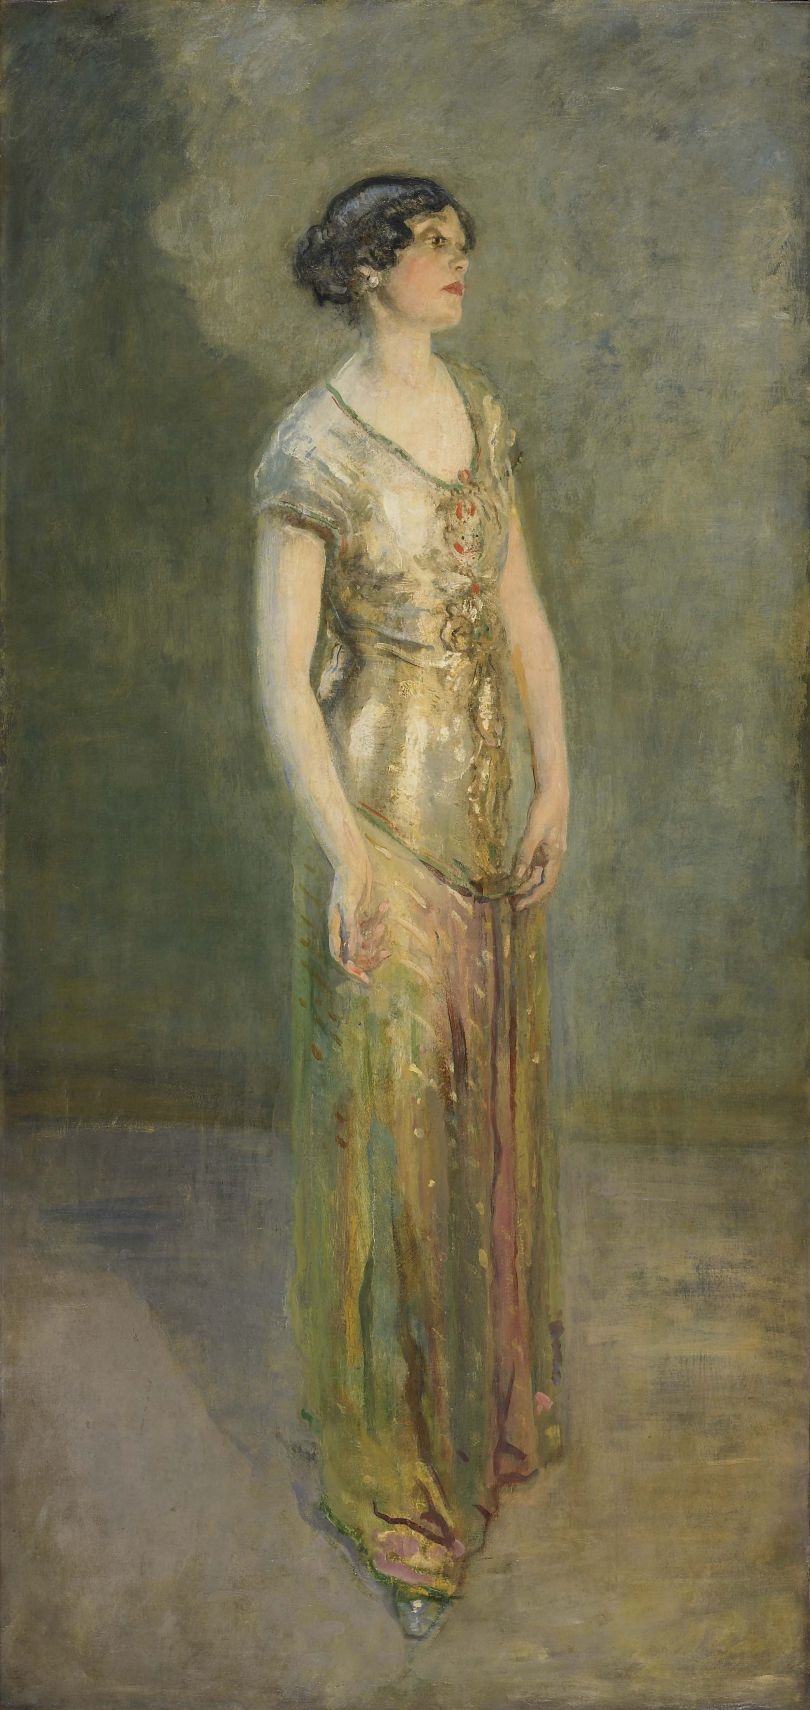 Mrs Cecil Baring (1916) – Ambrose McEvoy (1877-1927). Copyright: National Museums Liverpool, Walker Art Gallery, Presented by Arthur Pollen 1967